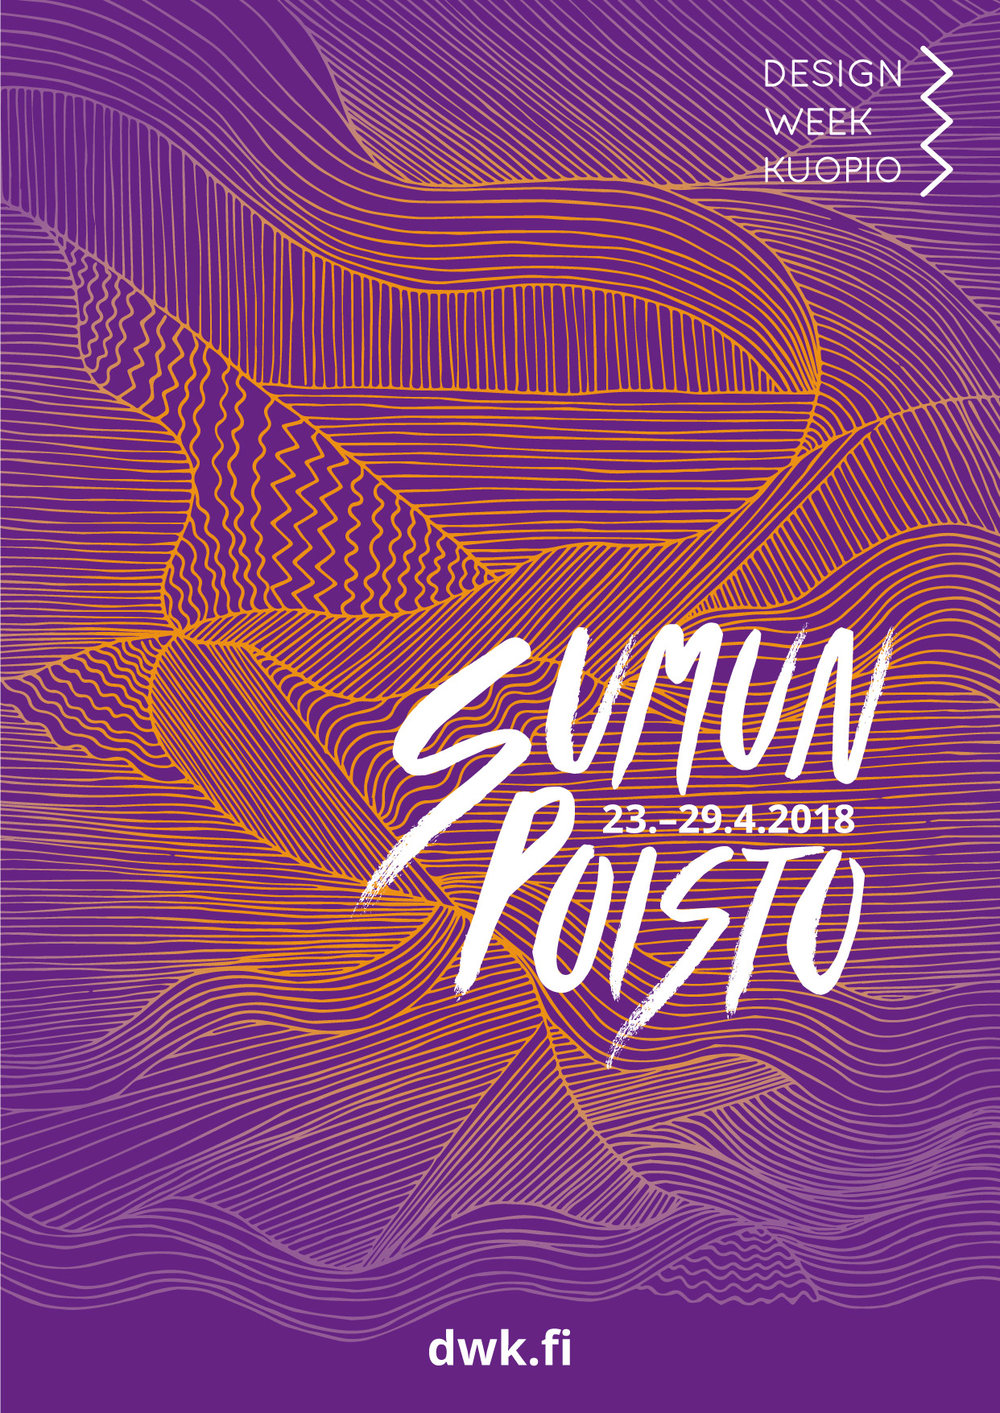 Design Week Kuopio 2018 - Visual Identity   Teamwork: Defogging Illustration (Sumun poisto) - Sonja Lehtomäki, Defogging Font and Poster Layout - Noora Ketolainen, Colours - Sonja Lehtomäki & Noora Ketolainen, Visual Identity brainstorming - Sonja Lehtomäki, Noora Ketolainen, Maiju Pääkkönen & Diana Pitkänen.